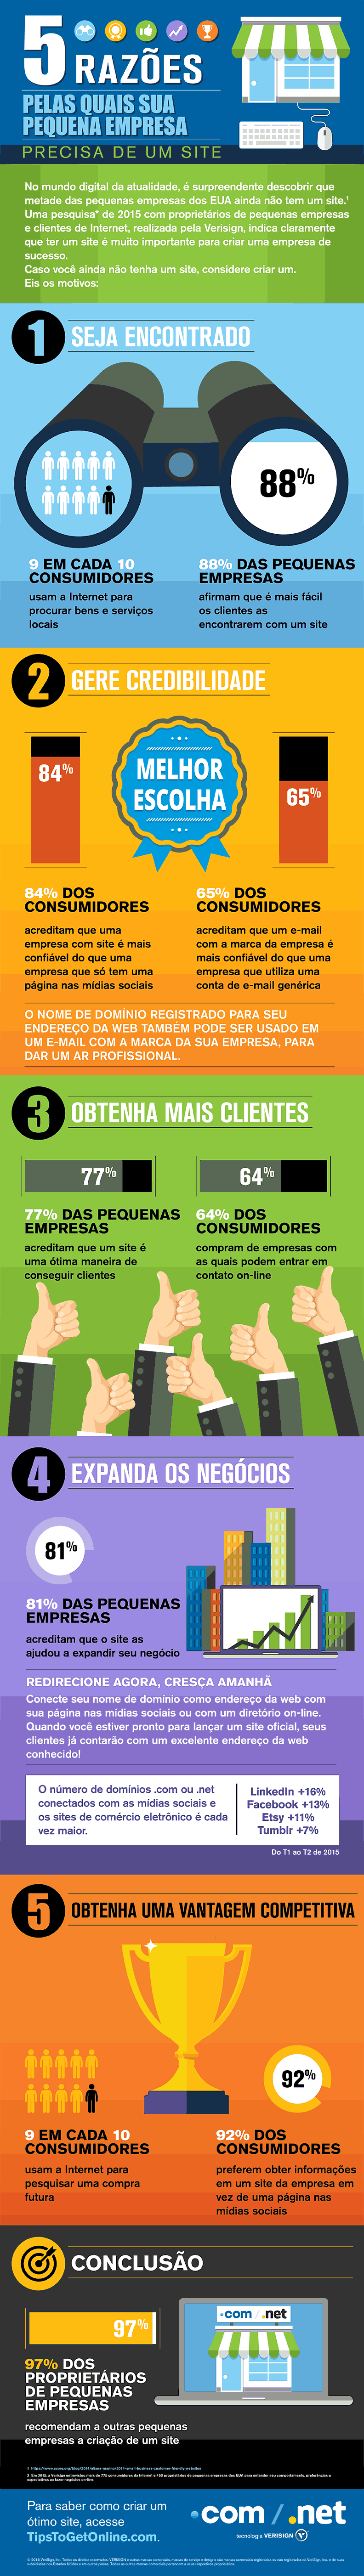 VRSN_5-Reasons-SB-Website_Infographic_201602-Editable_pt-br